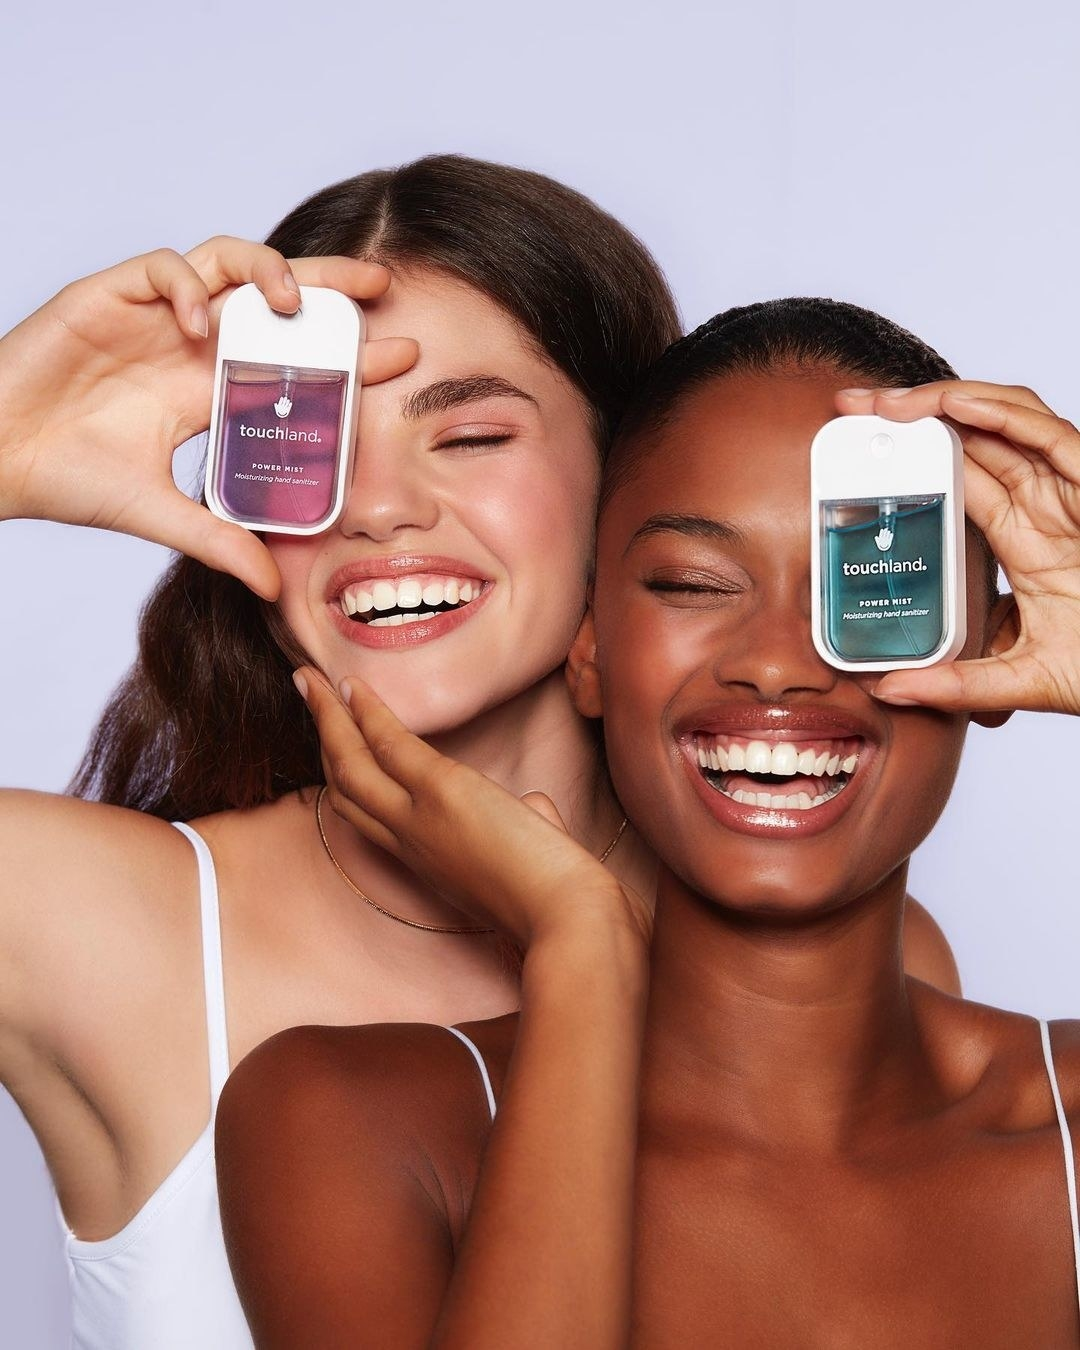 A pair of smiling models holding up bottles of the hand sanitizer